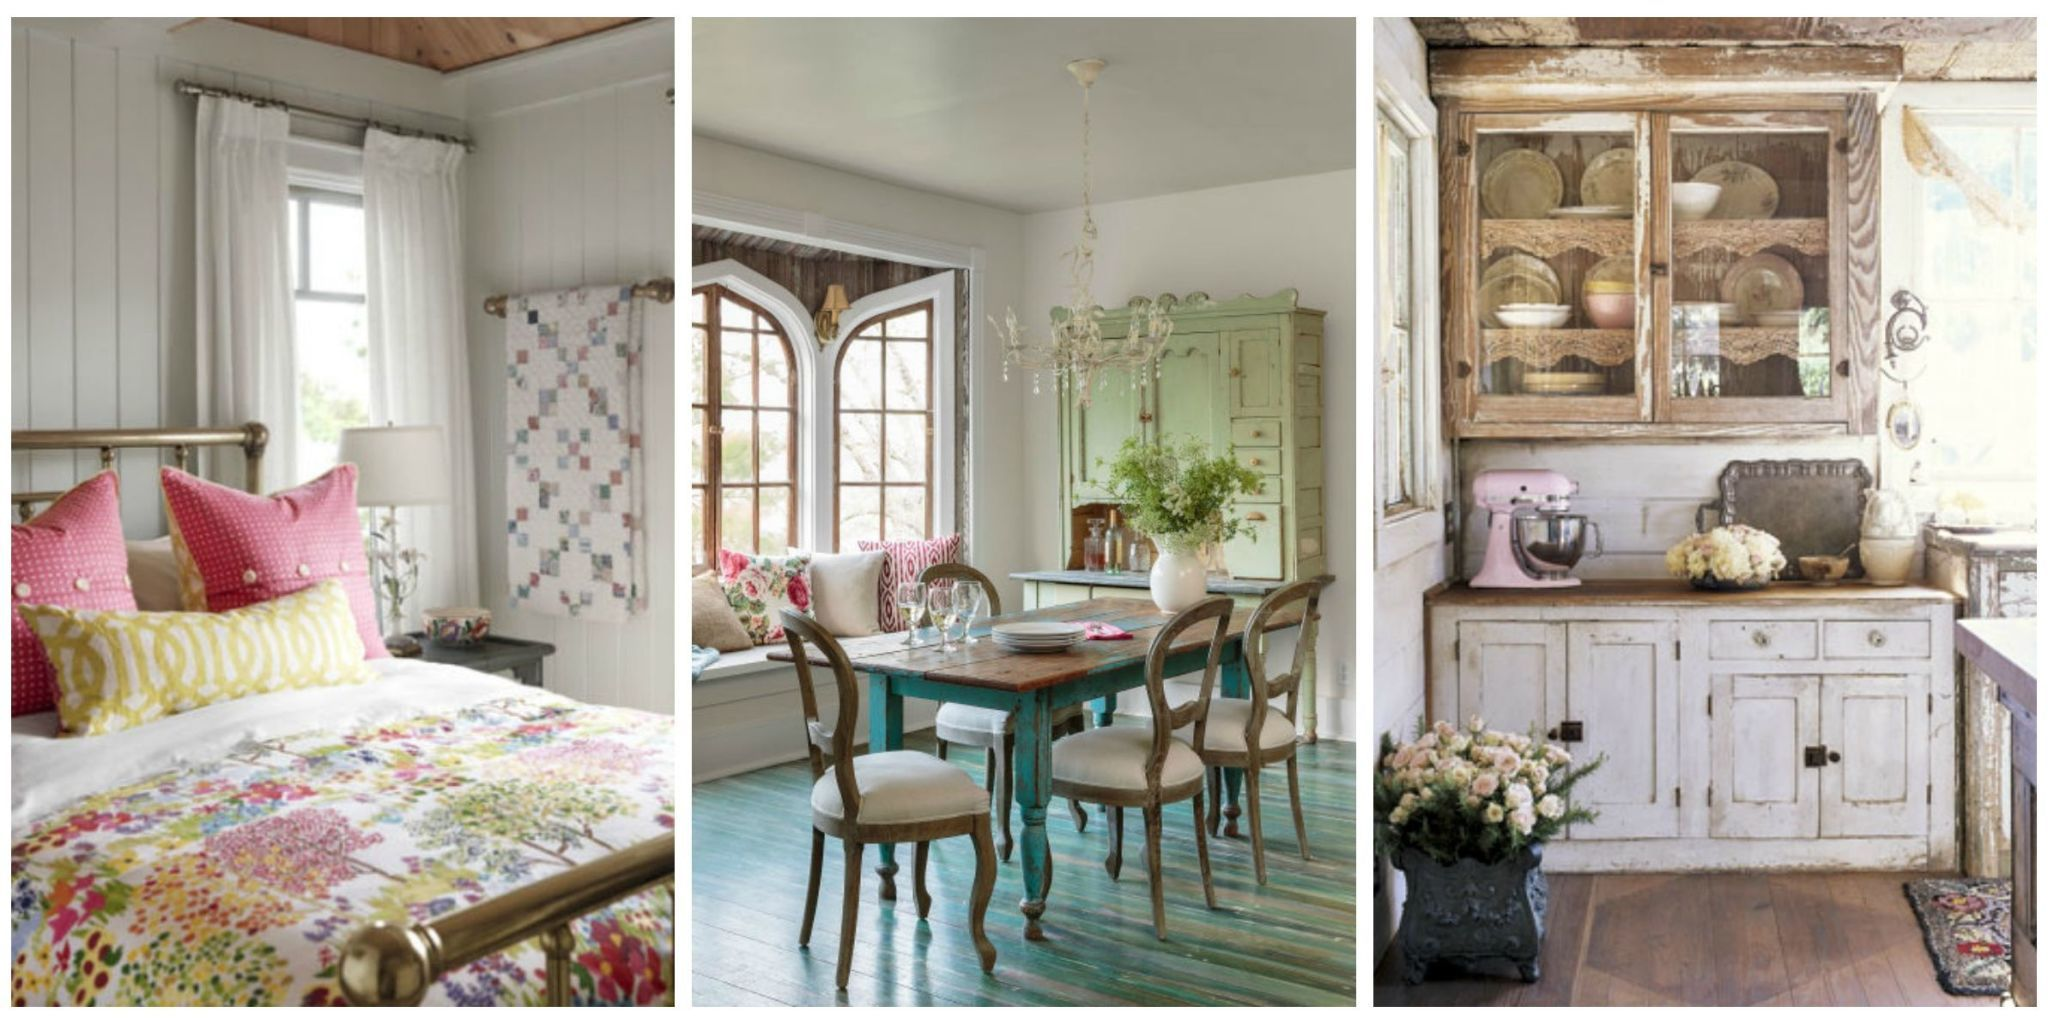 Ordinaire From California To Connecticut, These Country Cottage Getaways Are Filled  With Inspiring Decorating Ideas For Cozy Spaces.